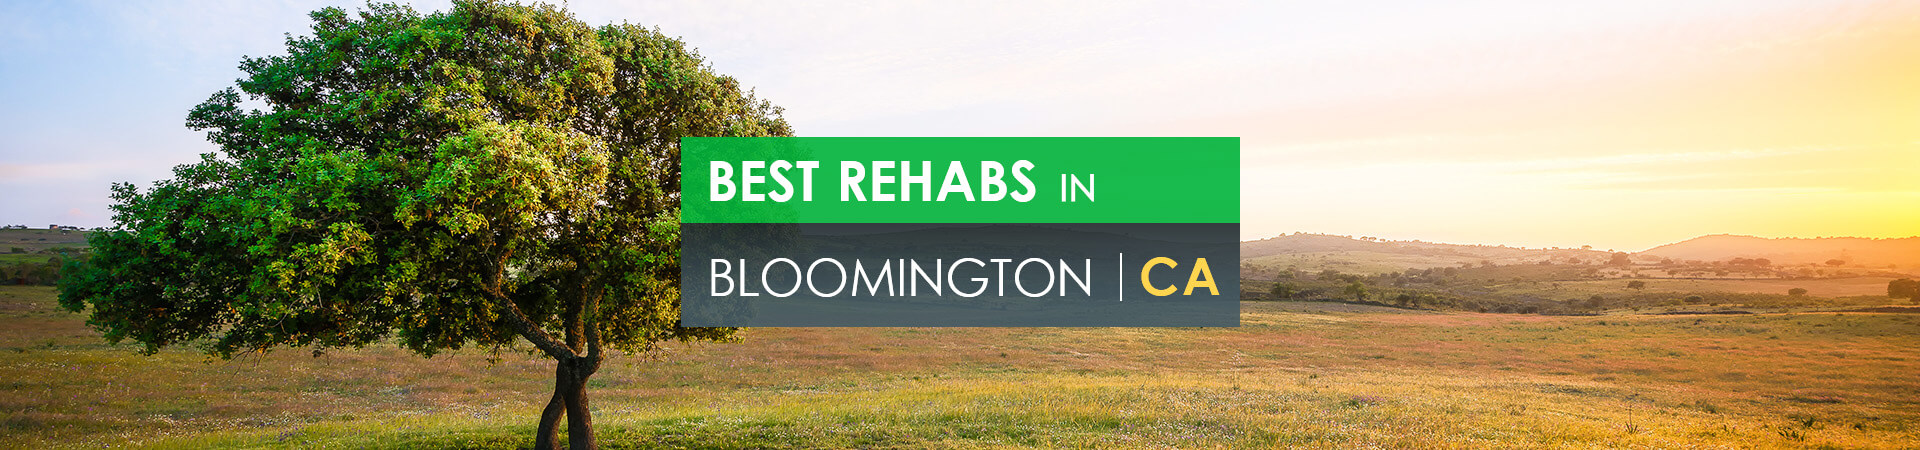 Best rehabs in Bloomington, CA